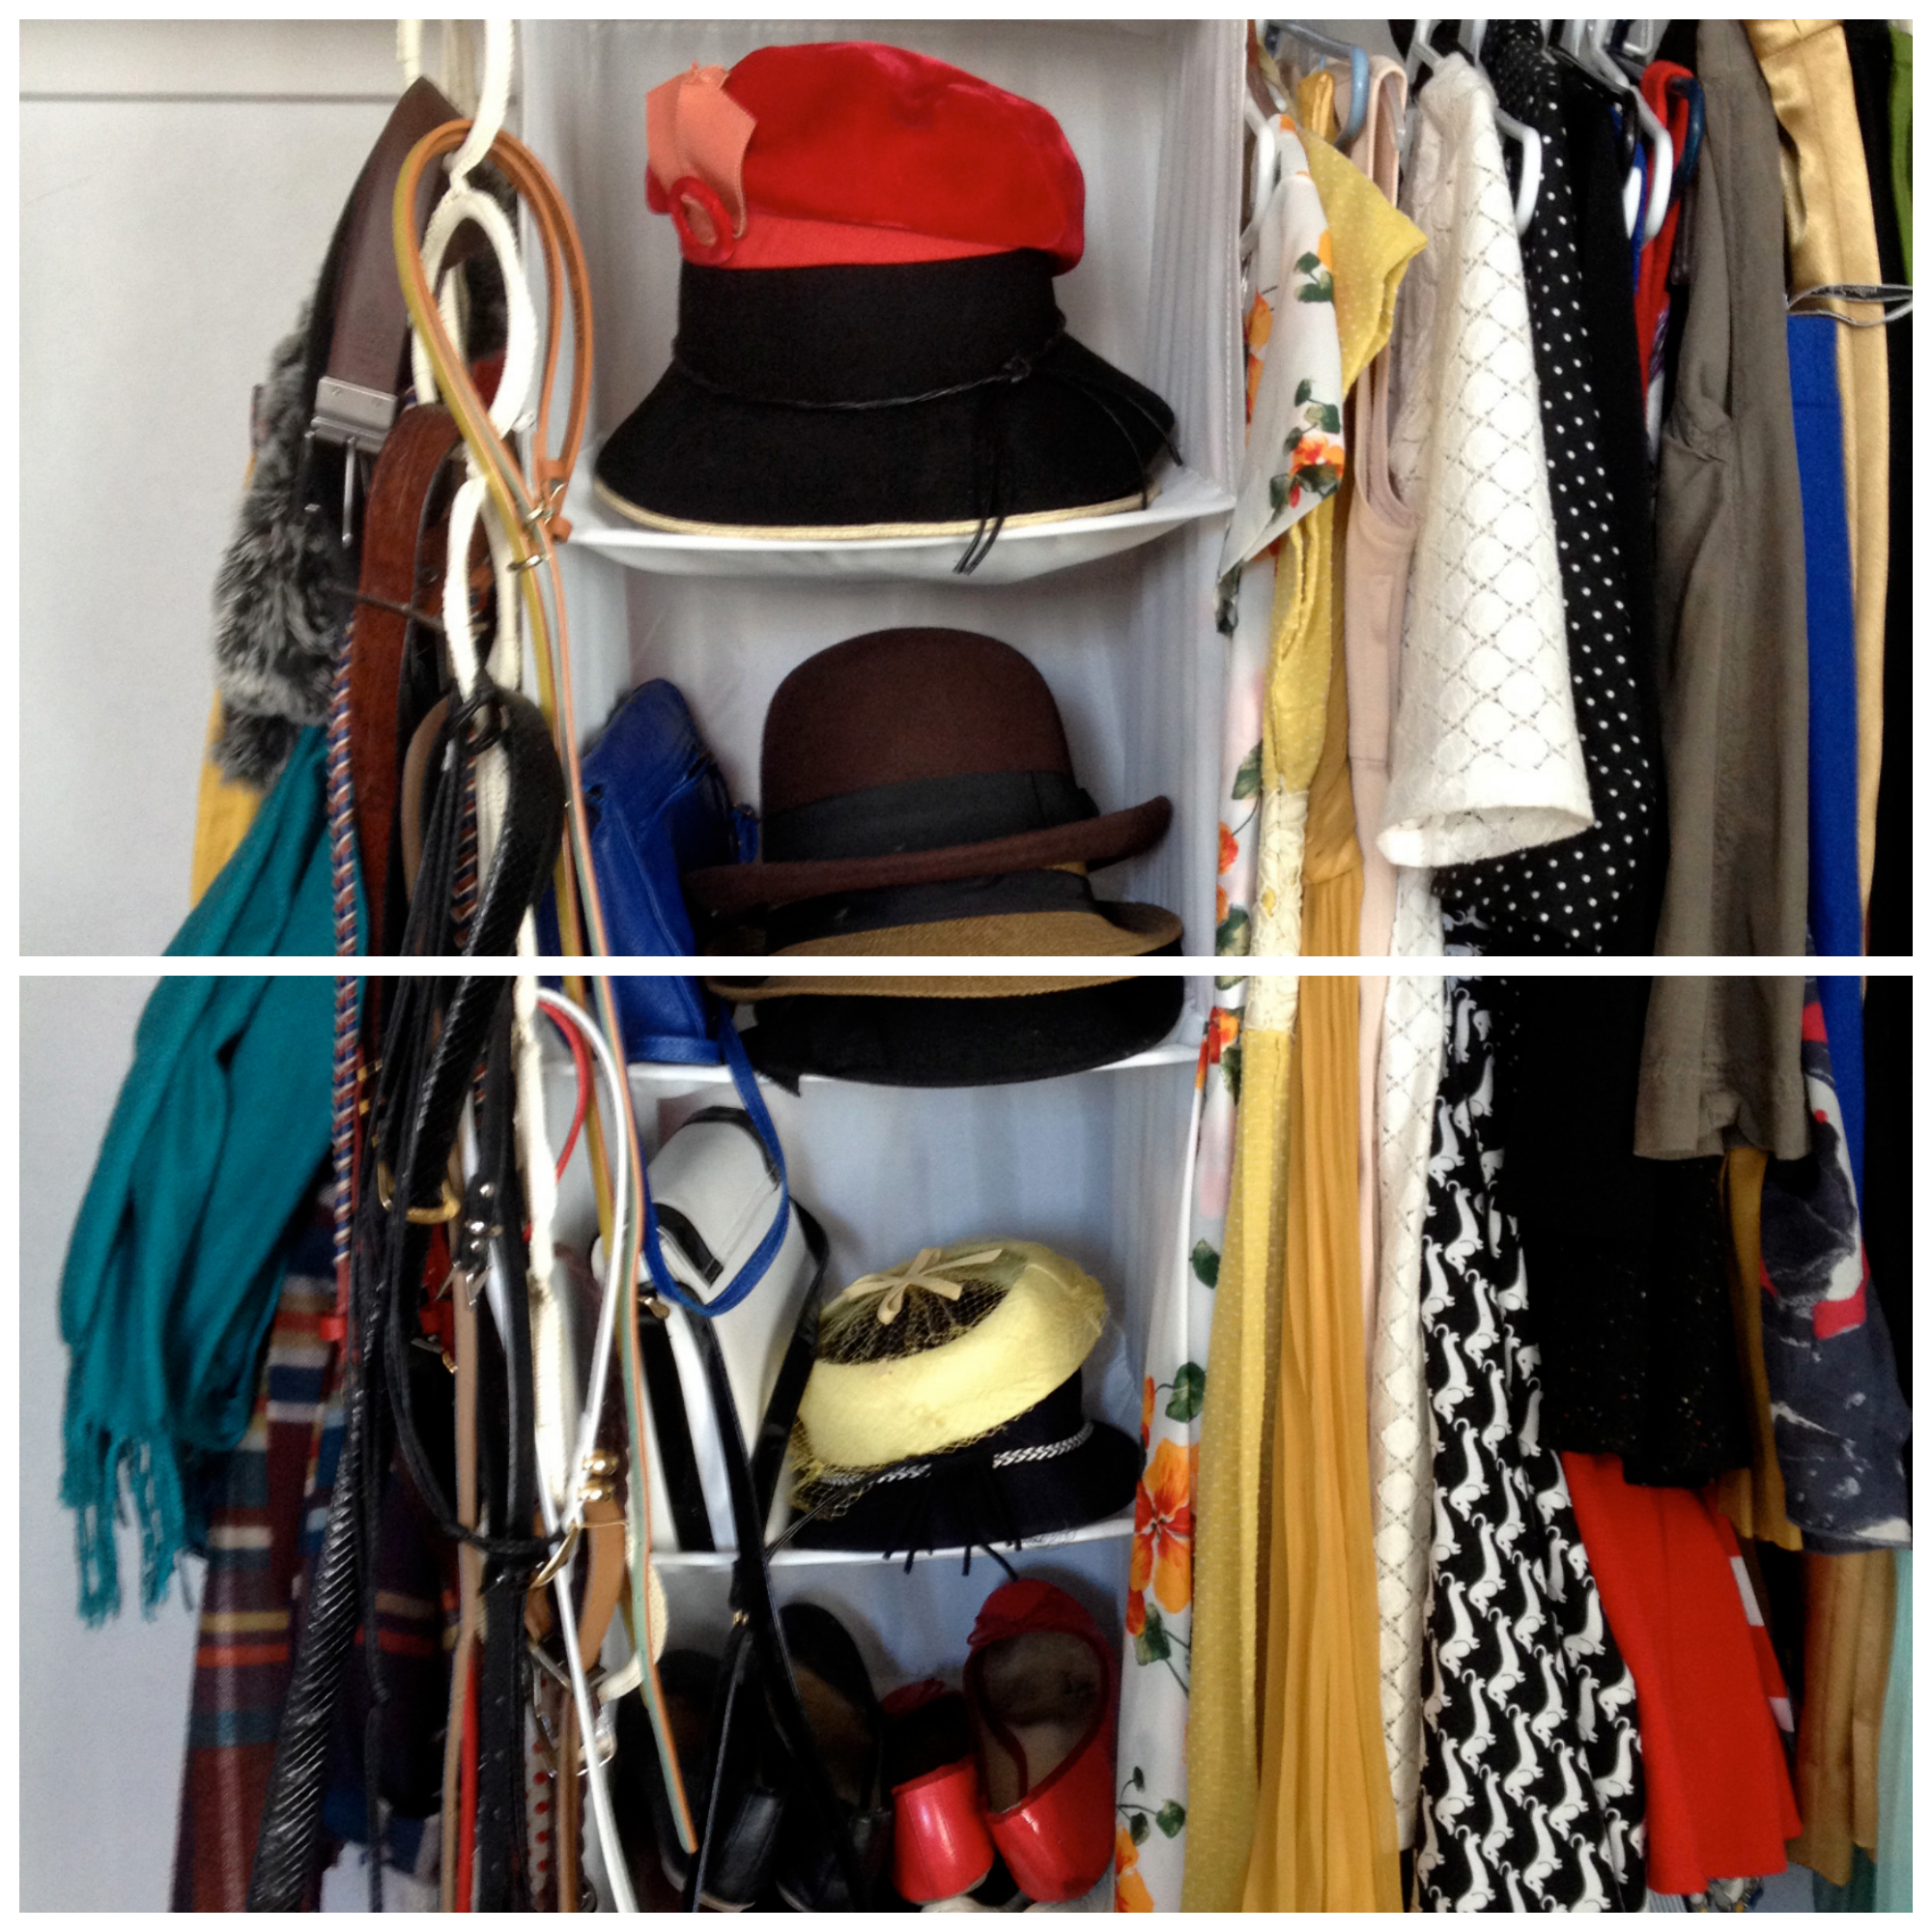 Closet, Wardrobe, Organization, Tour, Clothing, Hanging Shelf, Boots, Shoes